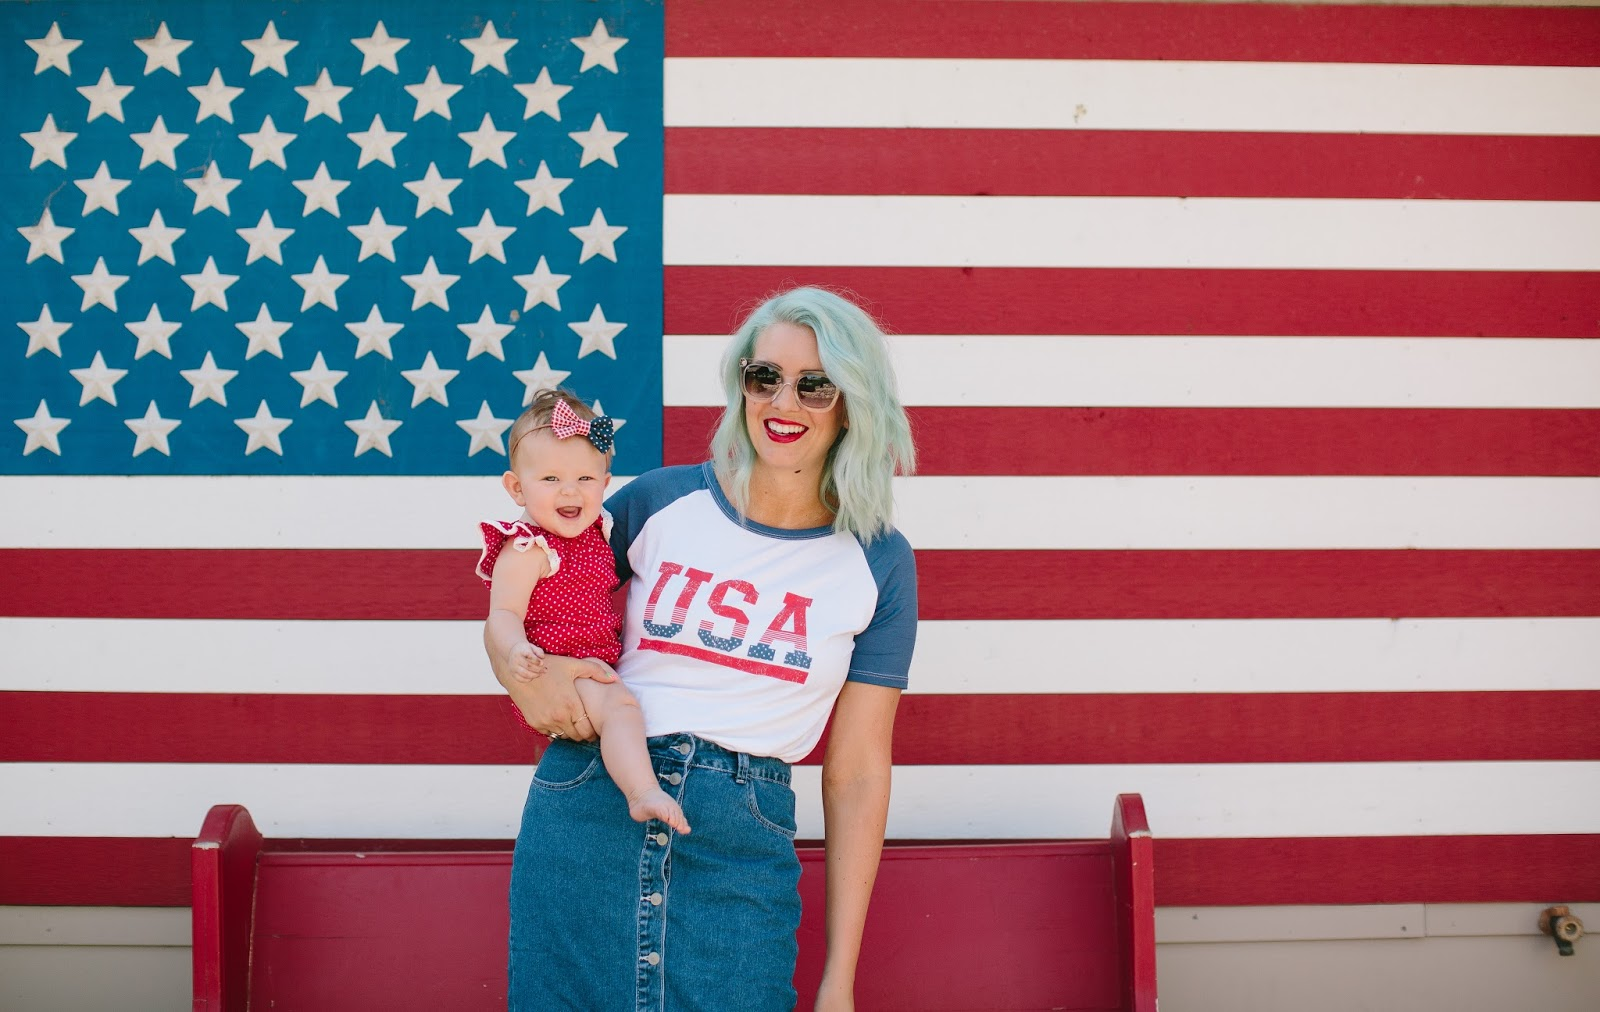 USA Outfit, Utah Fashion Blogger